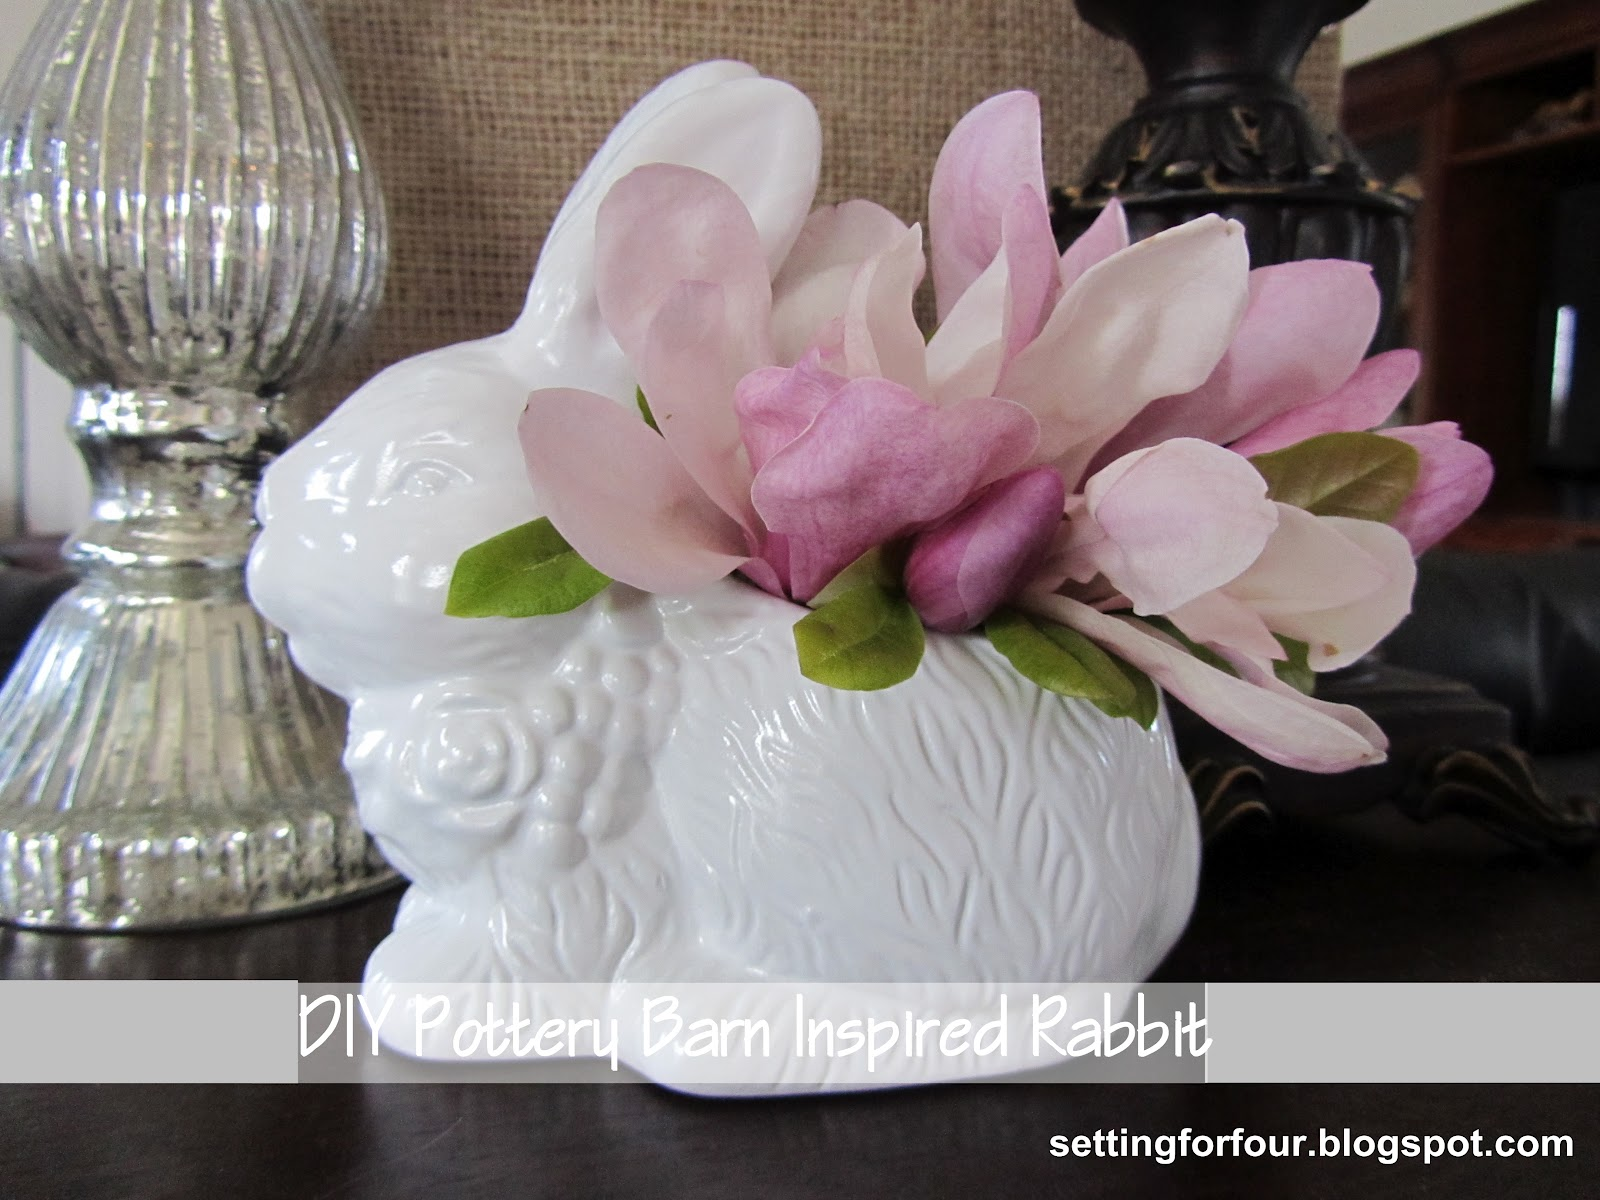 Easy diy pottery barn inspired rabbit setting for four diy pottery barn knock off easter rabbit tutorial bring pb style to your home decor reviewsmspy